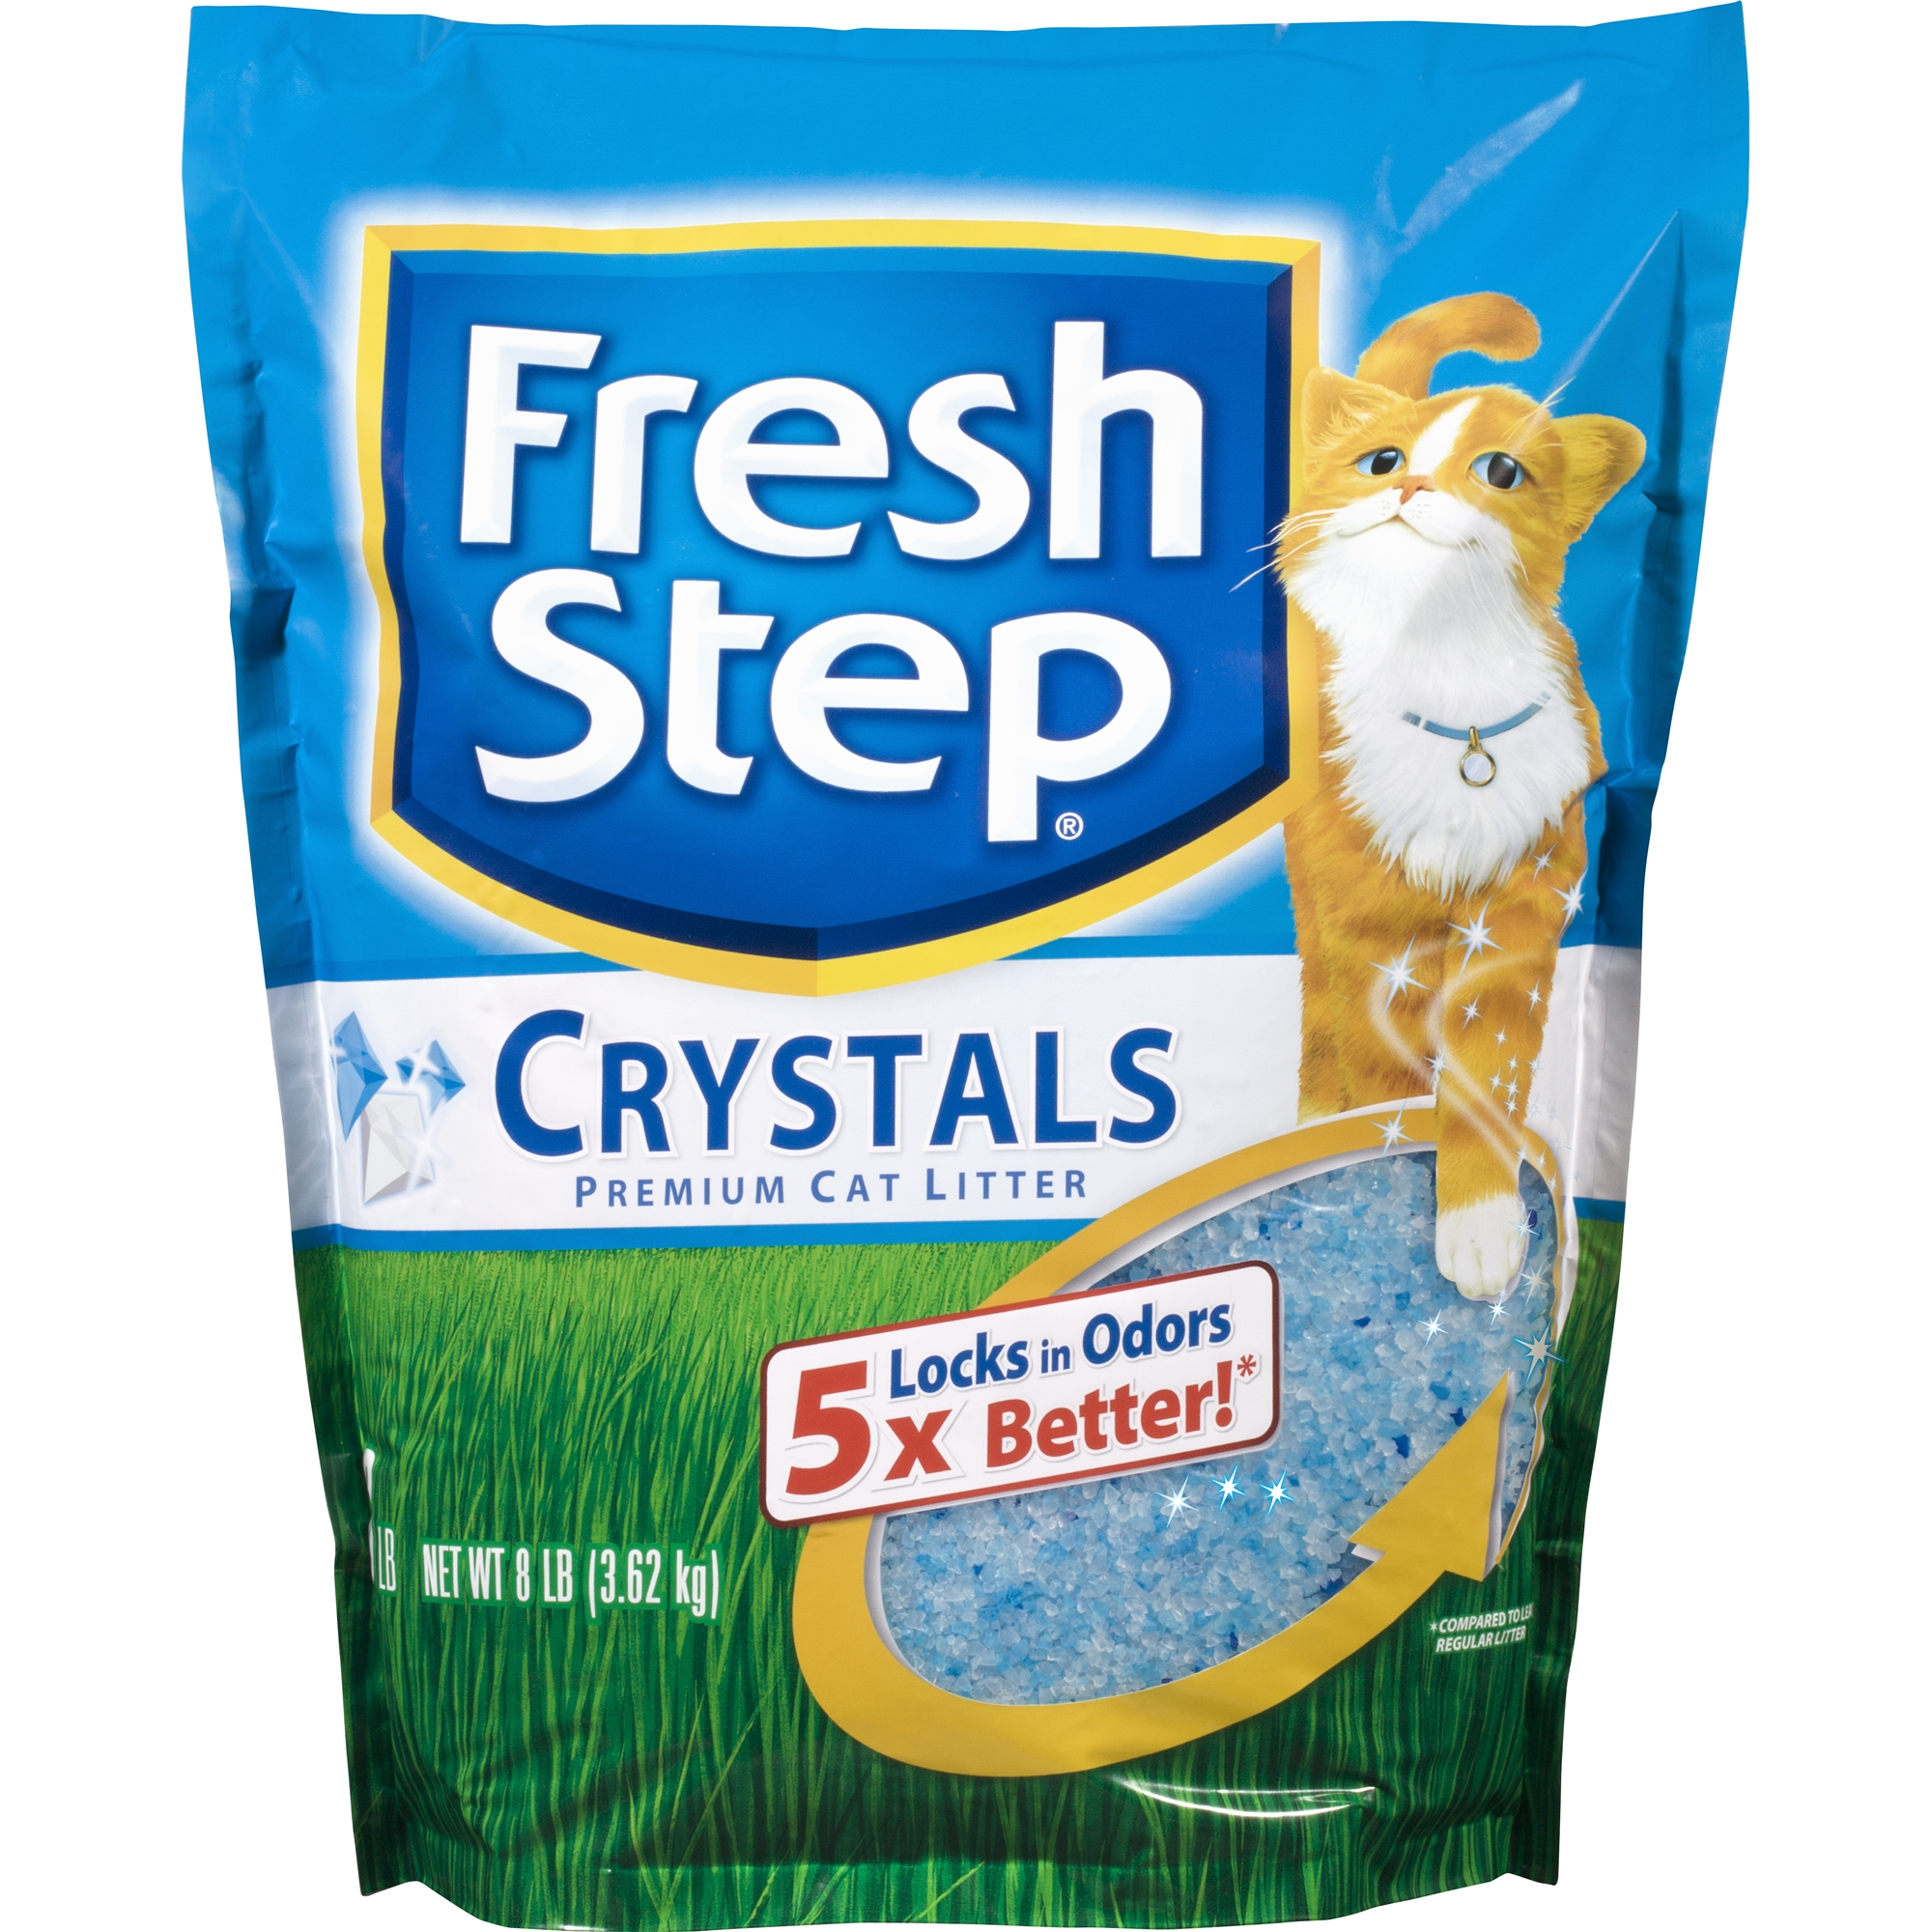 Fresh Step Crystals, Premium Cat Litter, Scented, 8 lbs